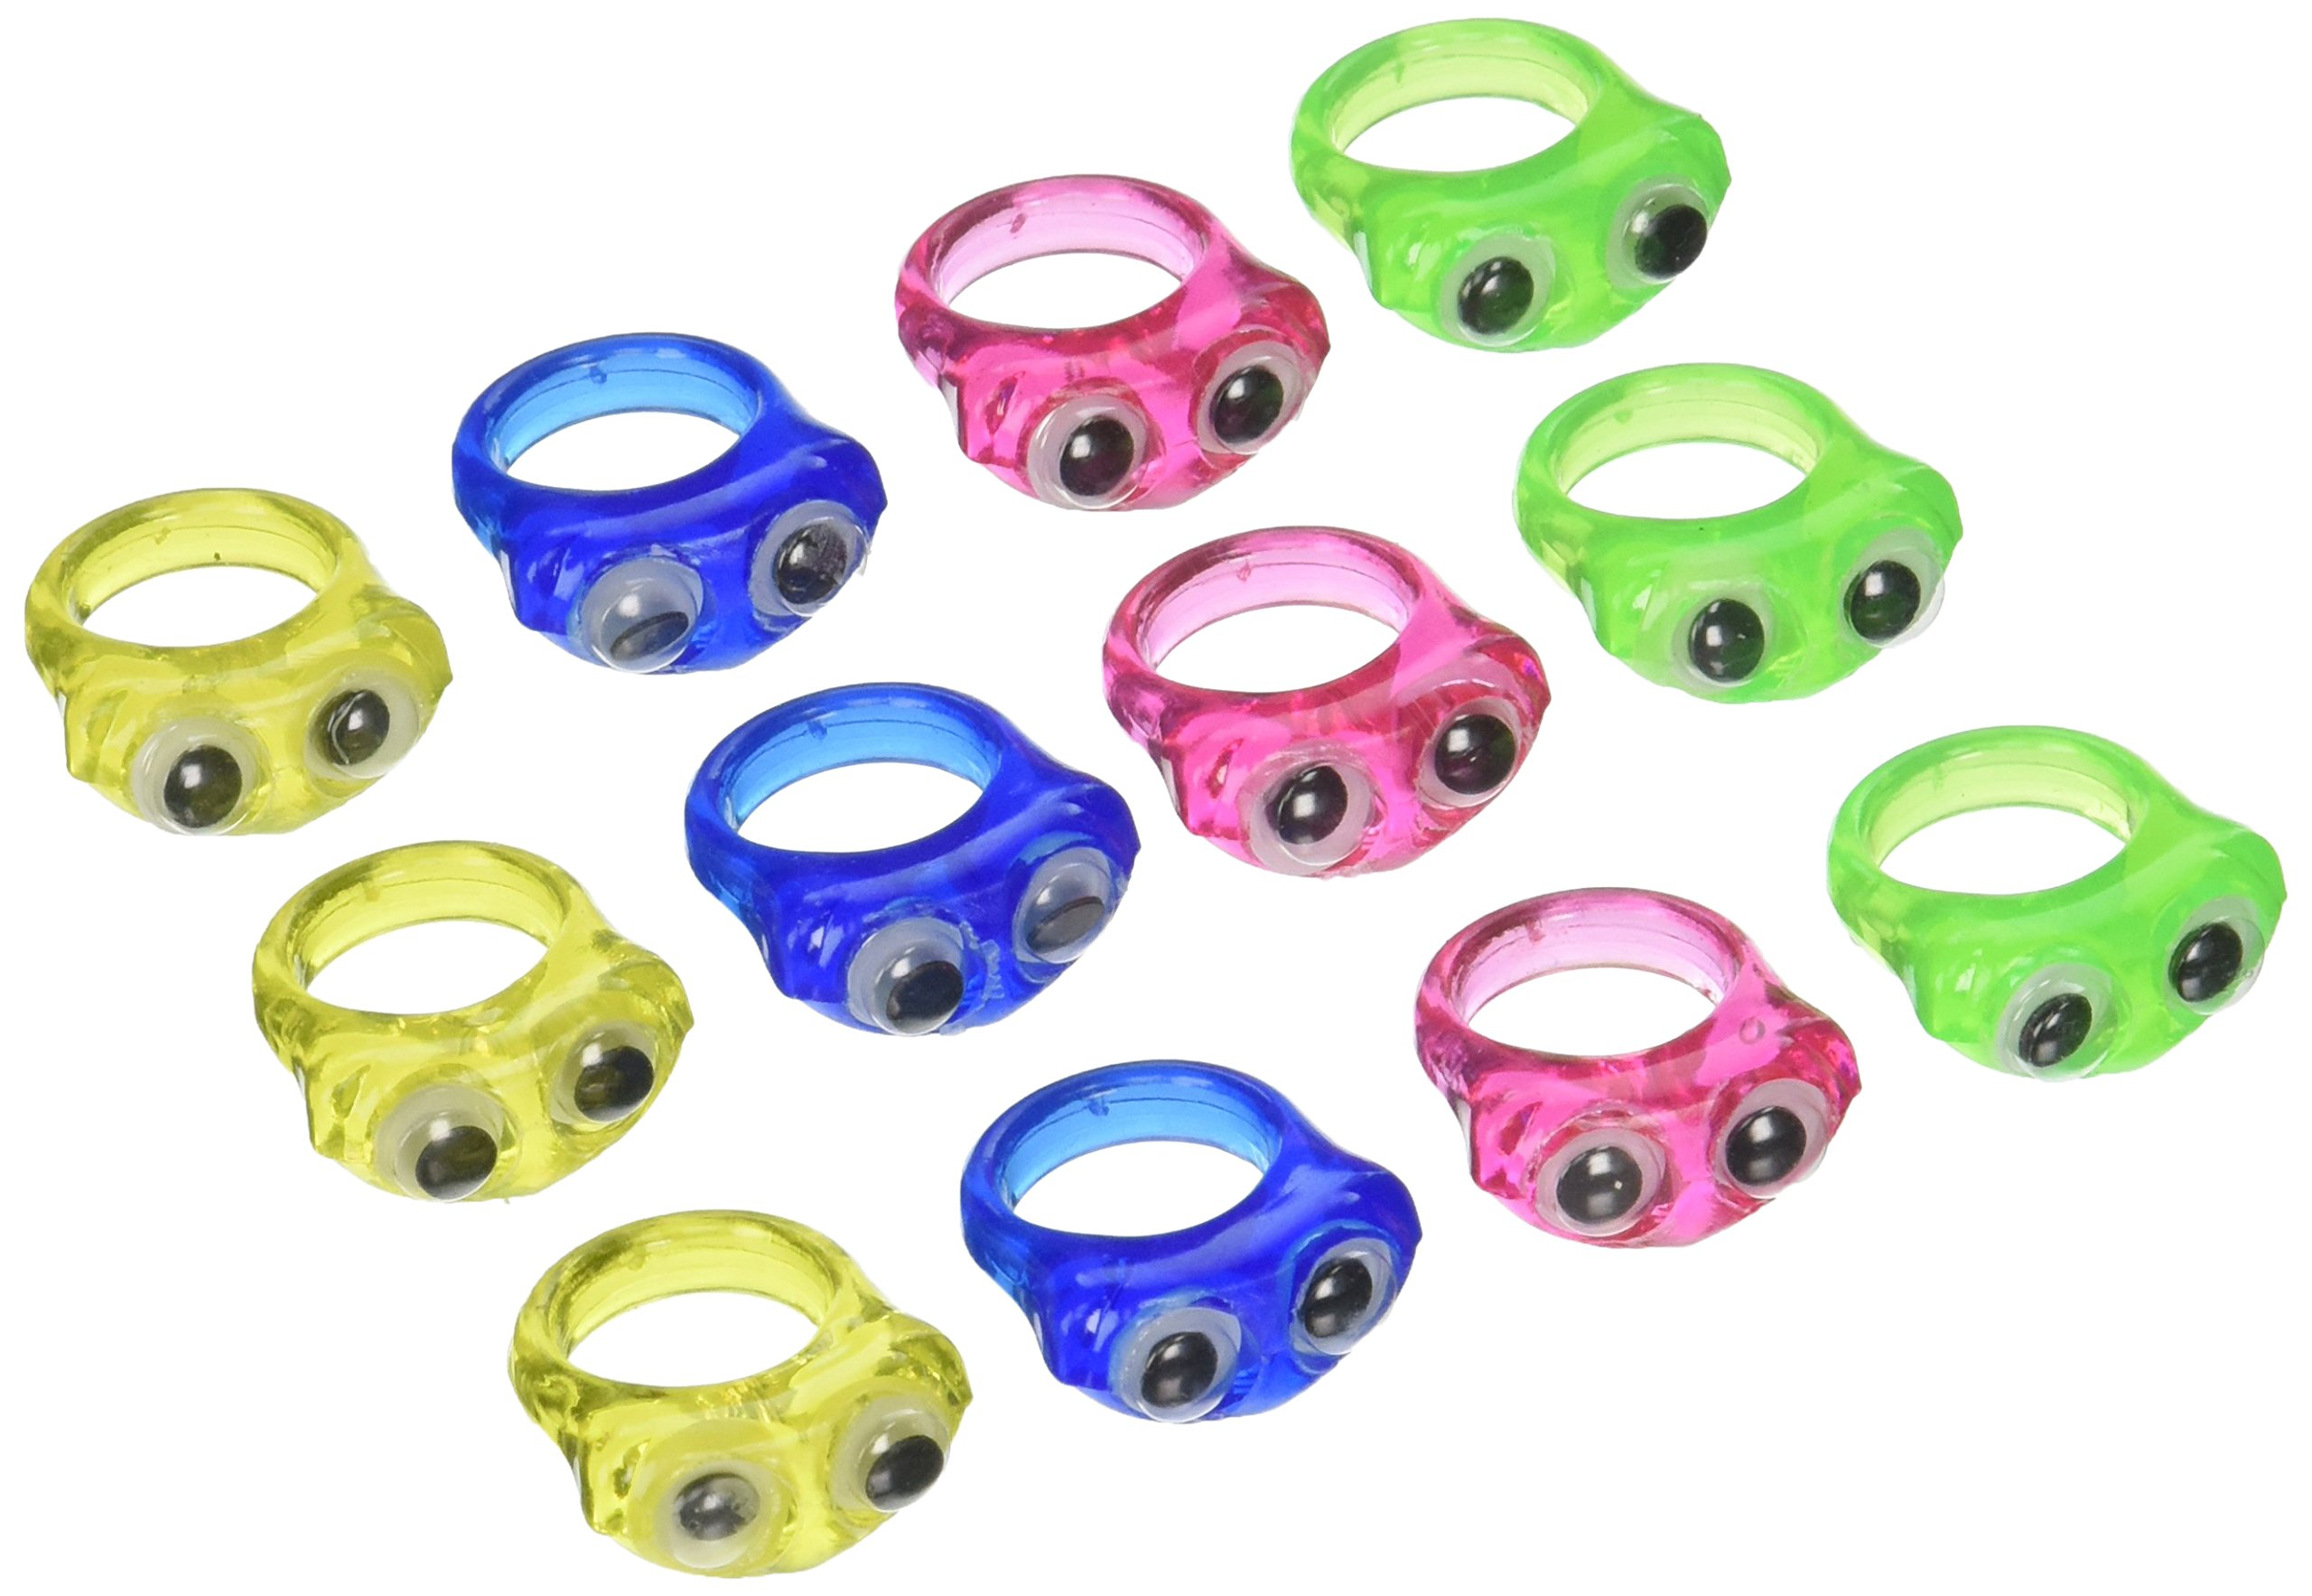 Wiggle Eye Rings - Novelty Jewelry & Googly Eye Rings / Bulk 36 Count by Oasis Supply